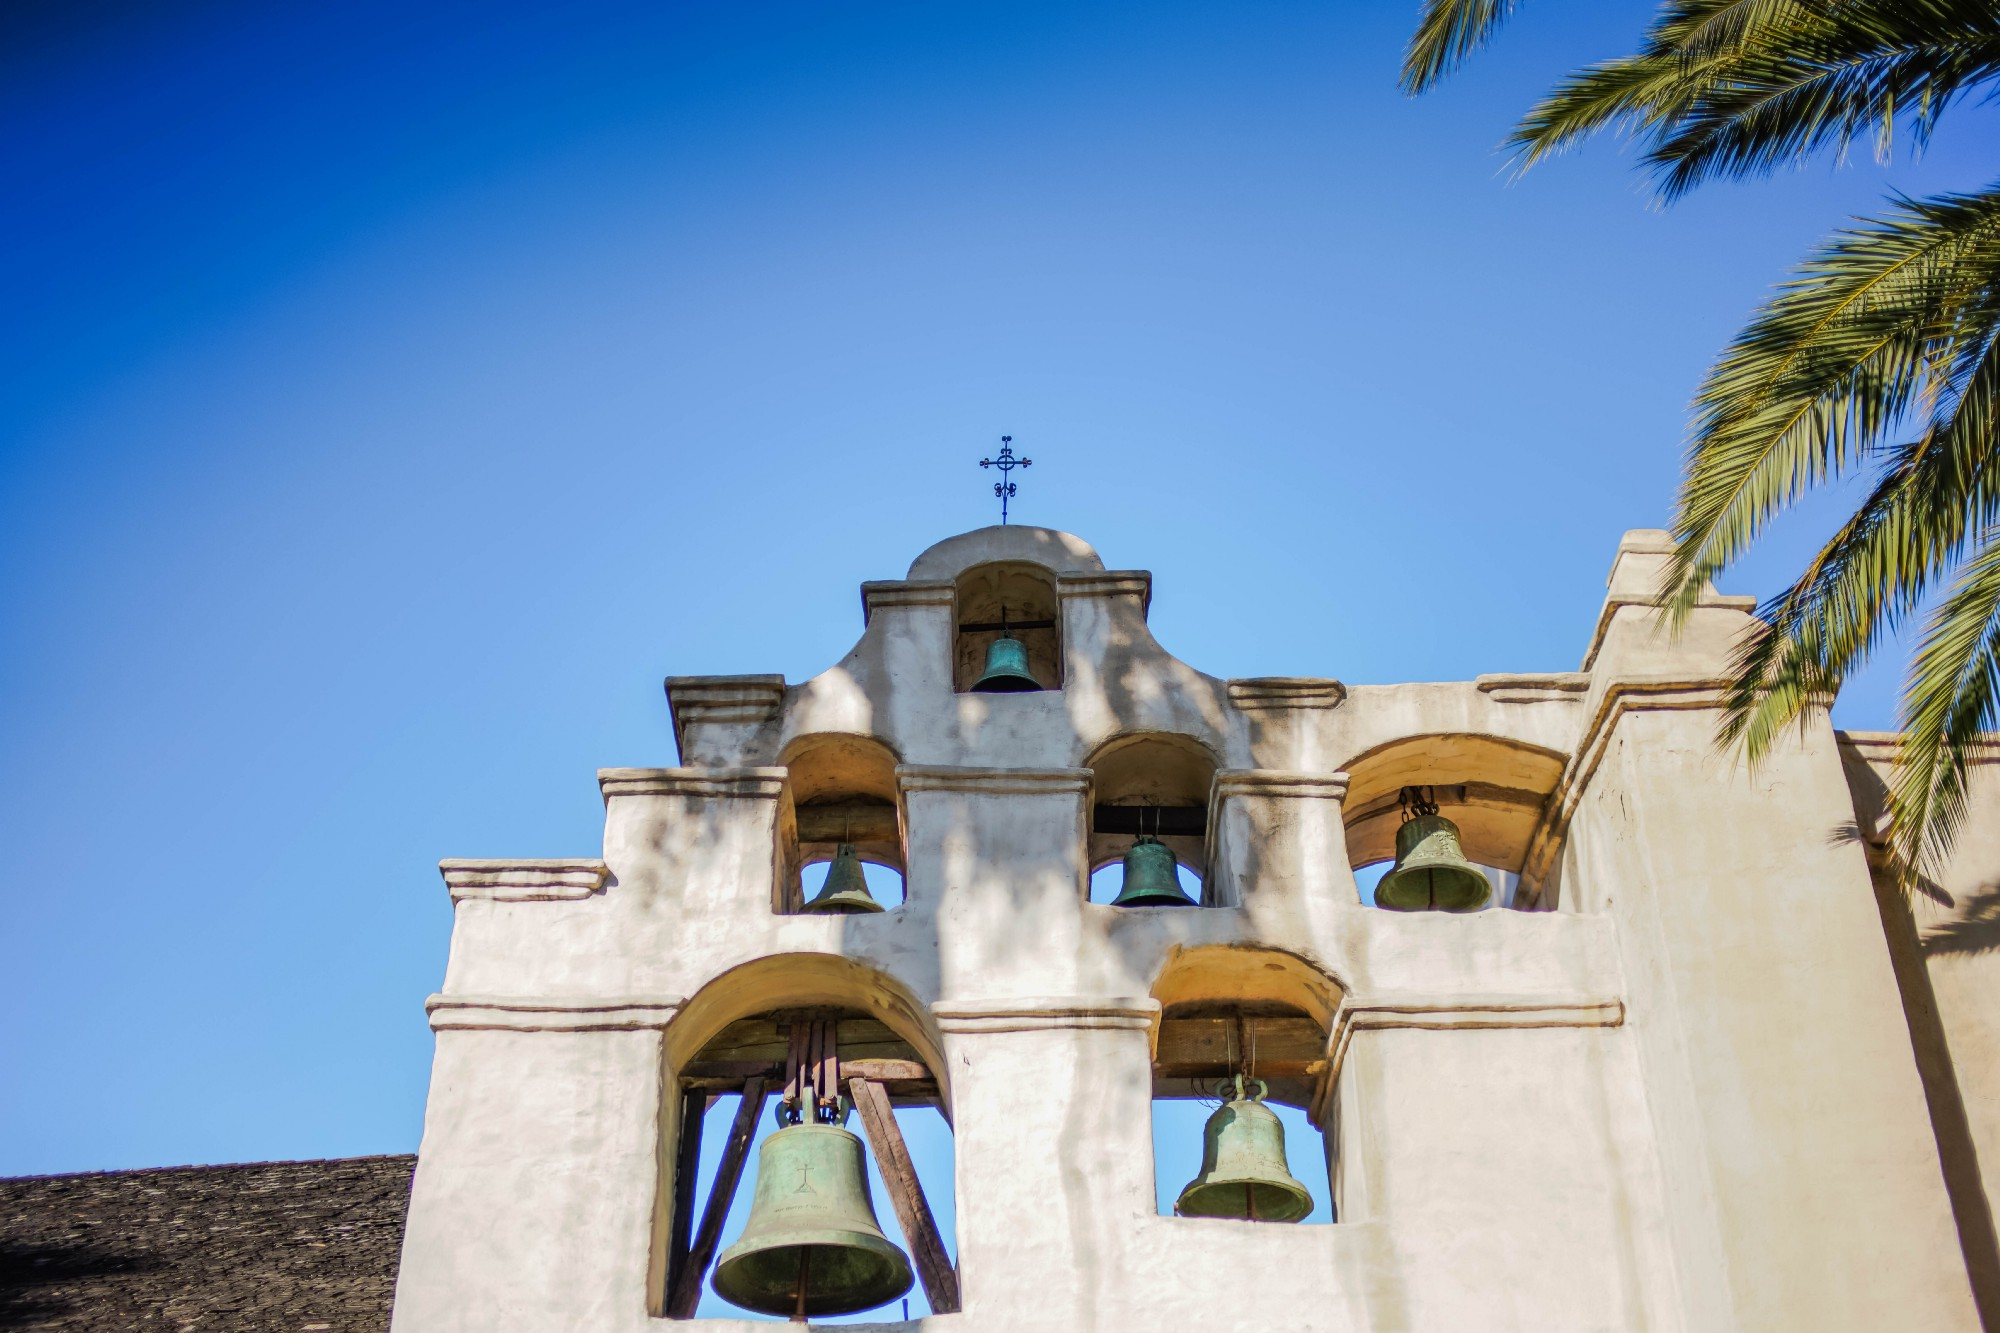 A bell tower with 5 bells embedded in the wall. Blue sky above.